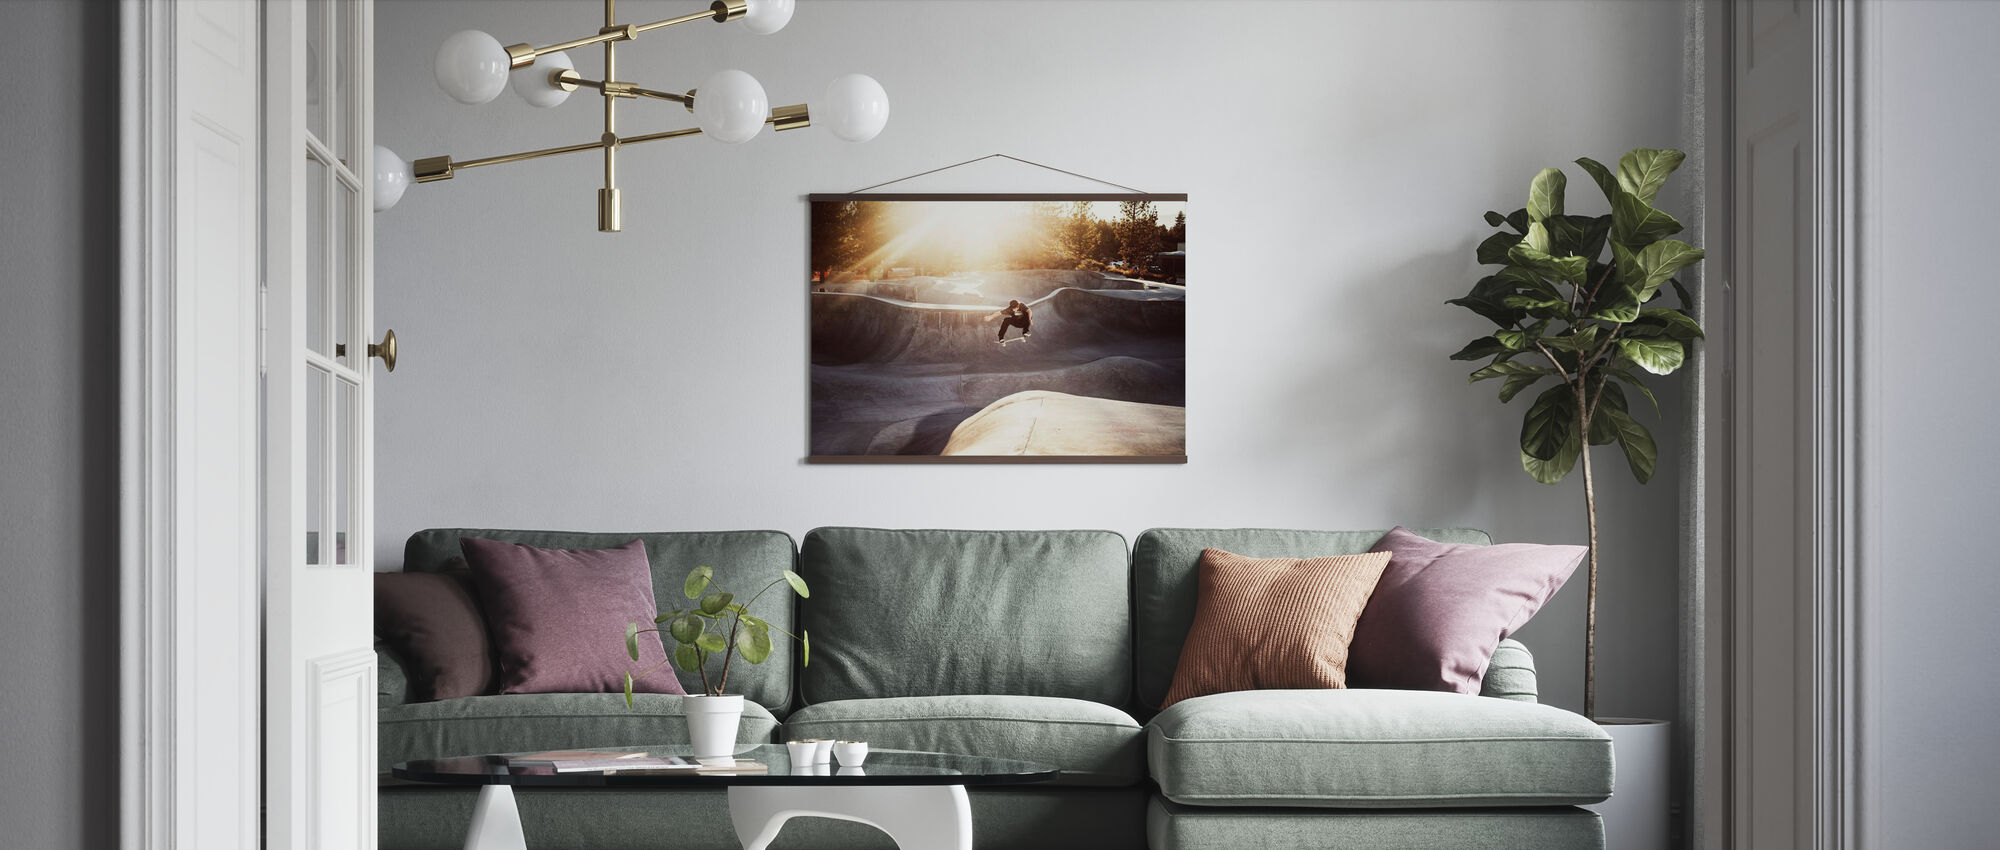 Skateboard Park - Poster - Living Room